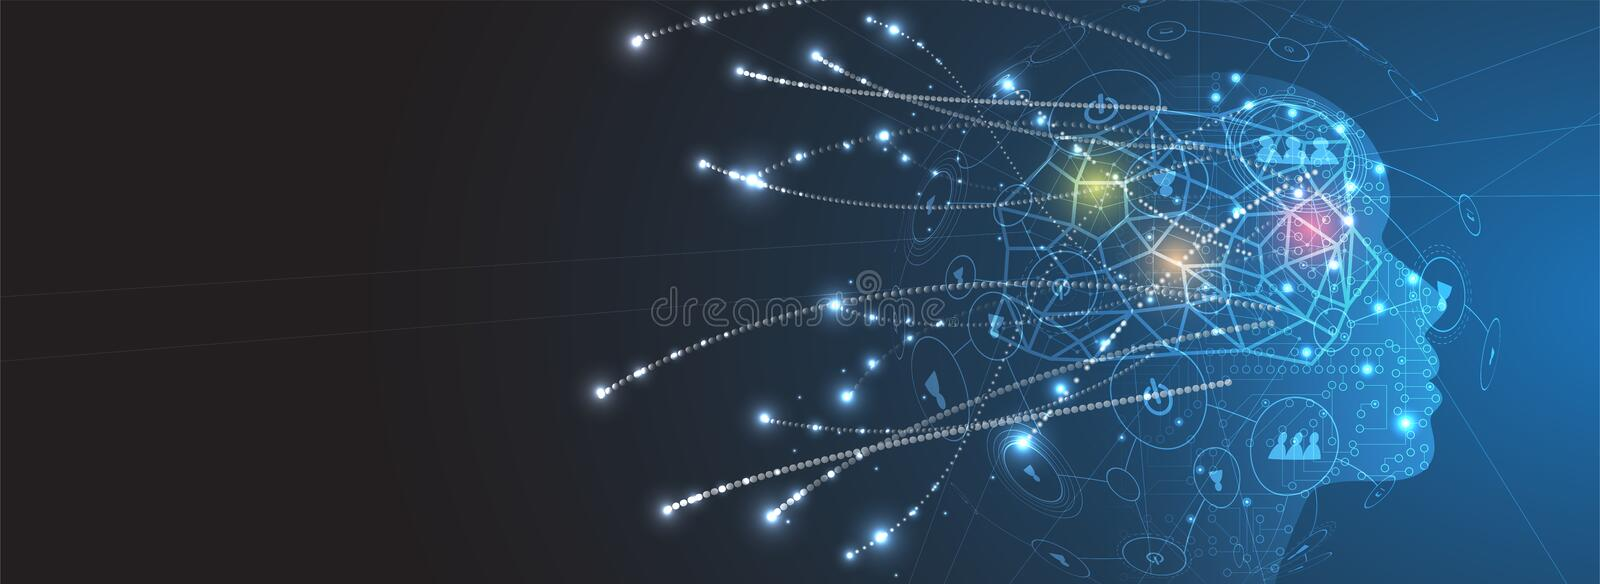 Artificial intelligence. Technology web background. Virtual concept stock image